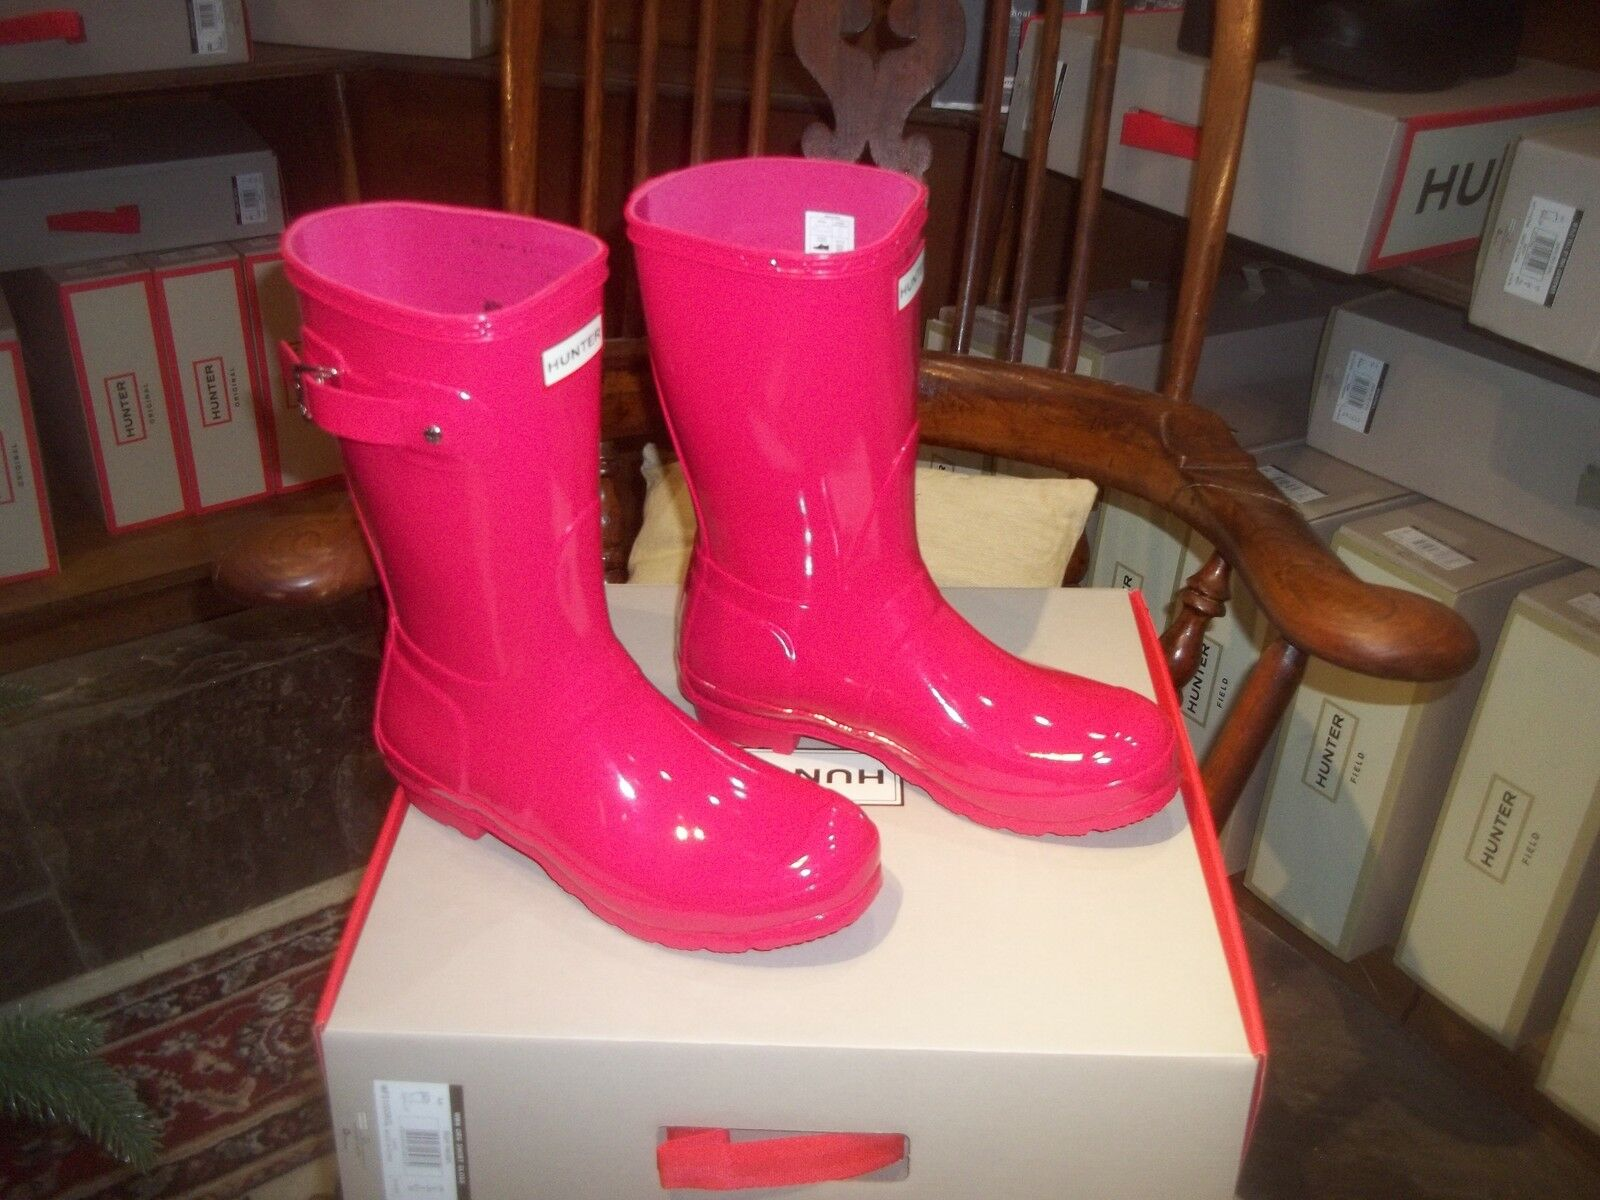 GLOSS HUNTER WELLIES WELLINGTONS  IN HBLIFBX SIZE 6 BRIGHT  PINK  SHORT WOMENS